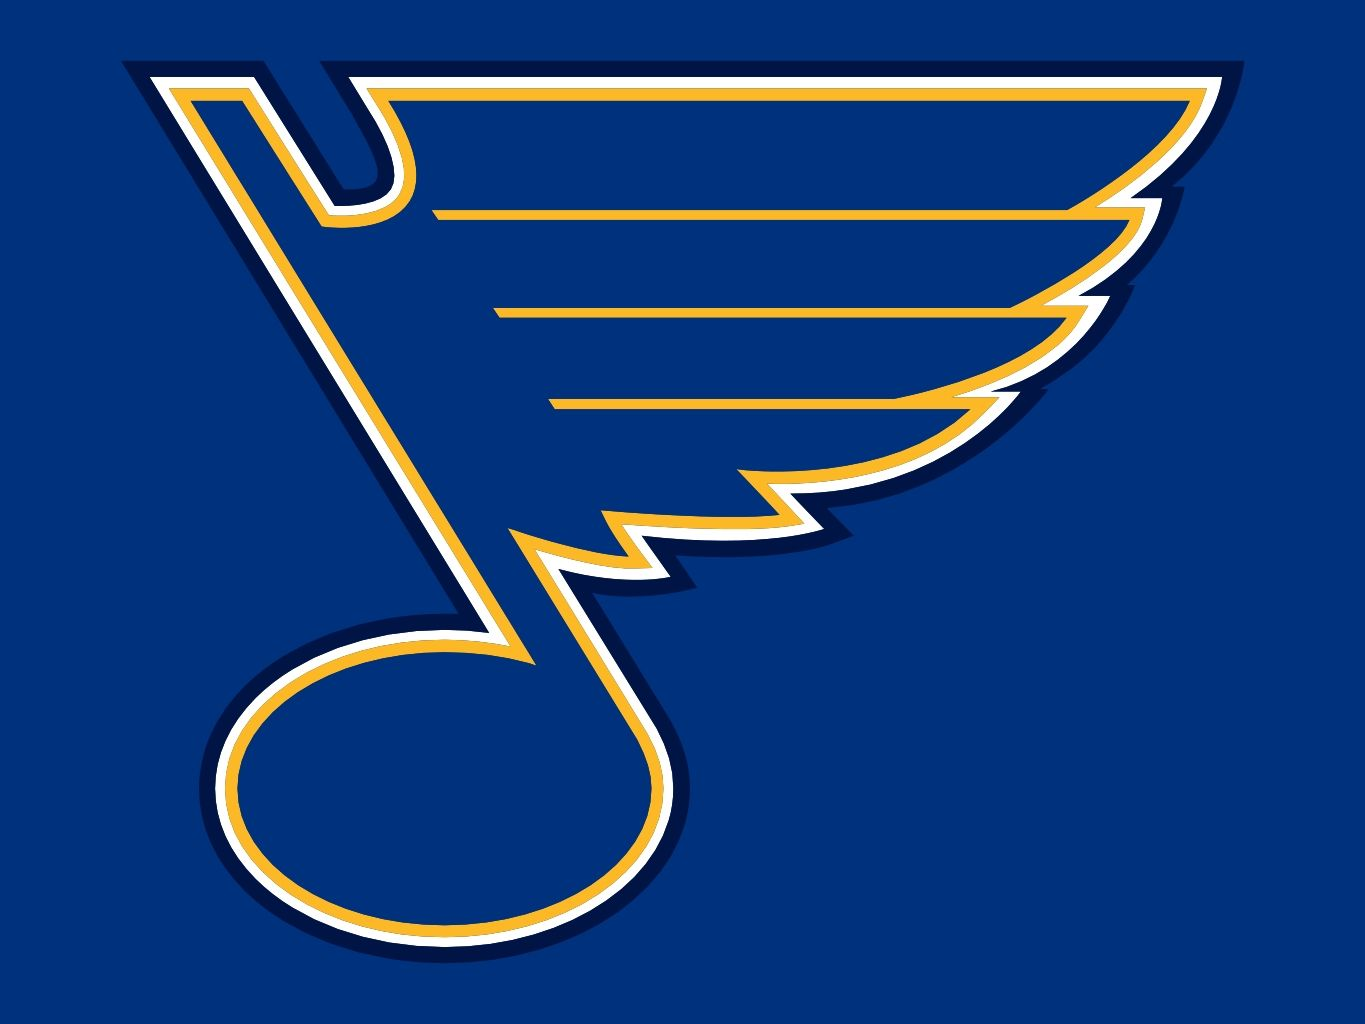 pin by dwayne holloway on sports | st louis blues, blue, hockey